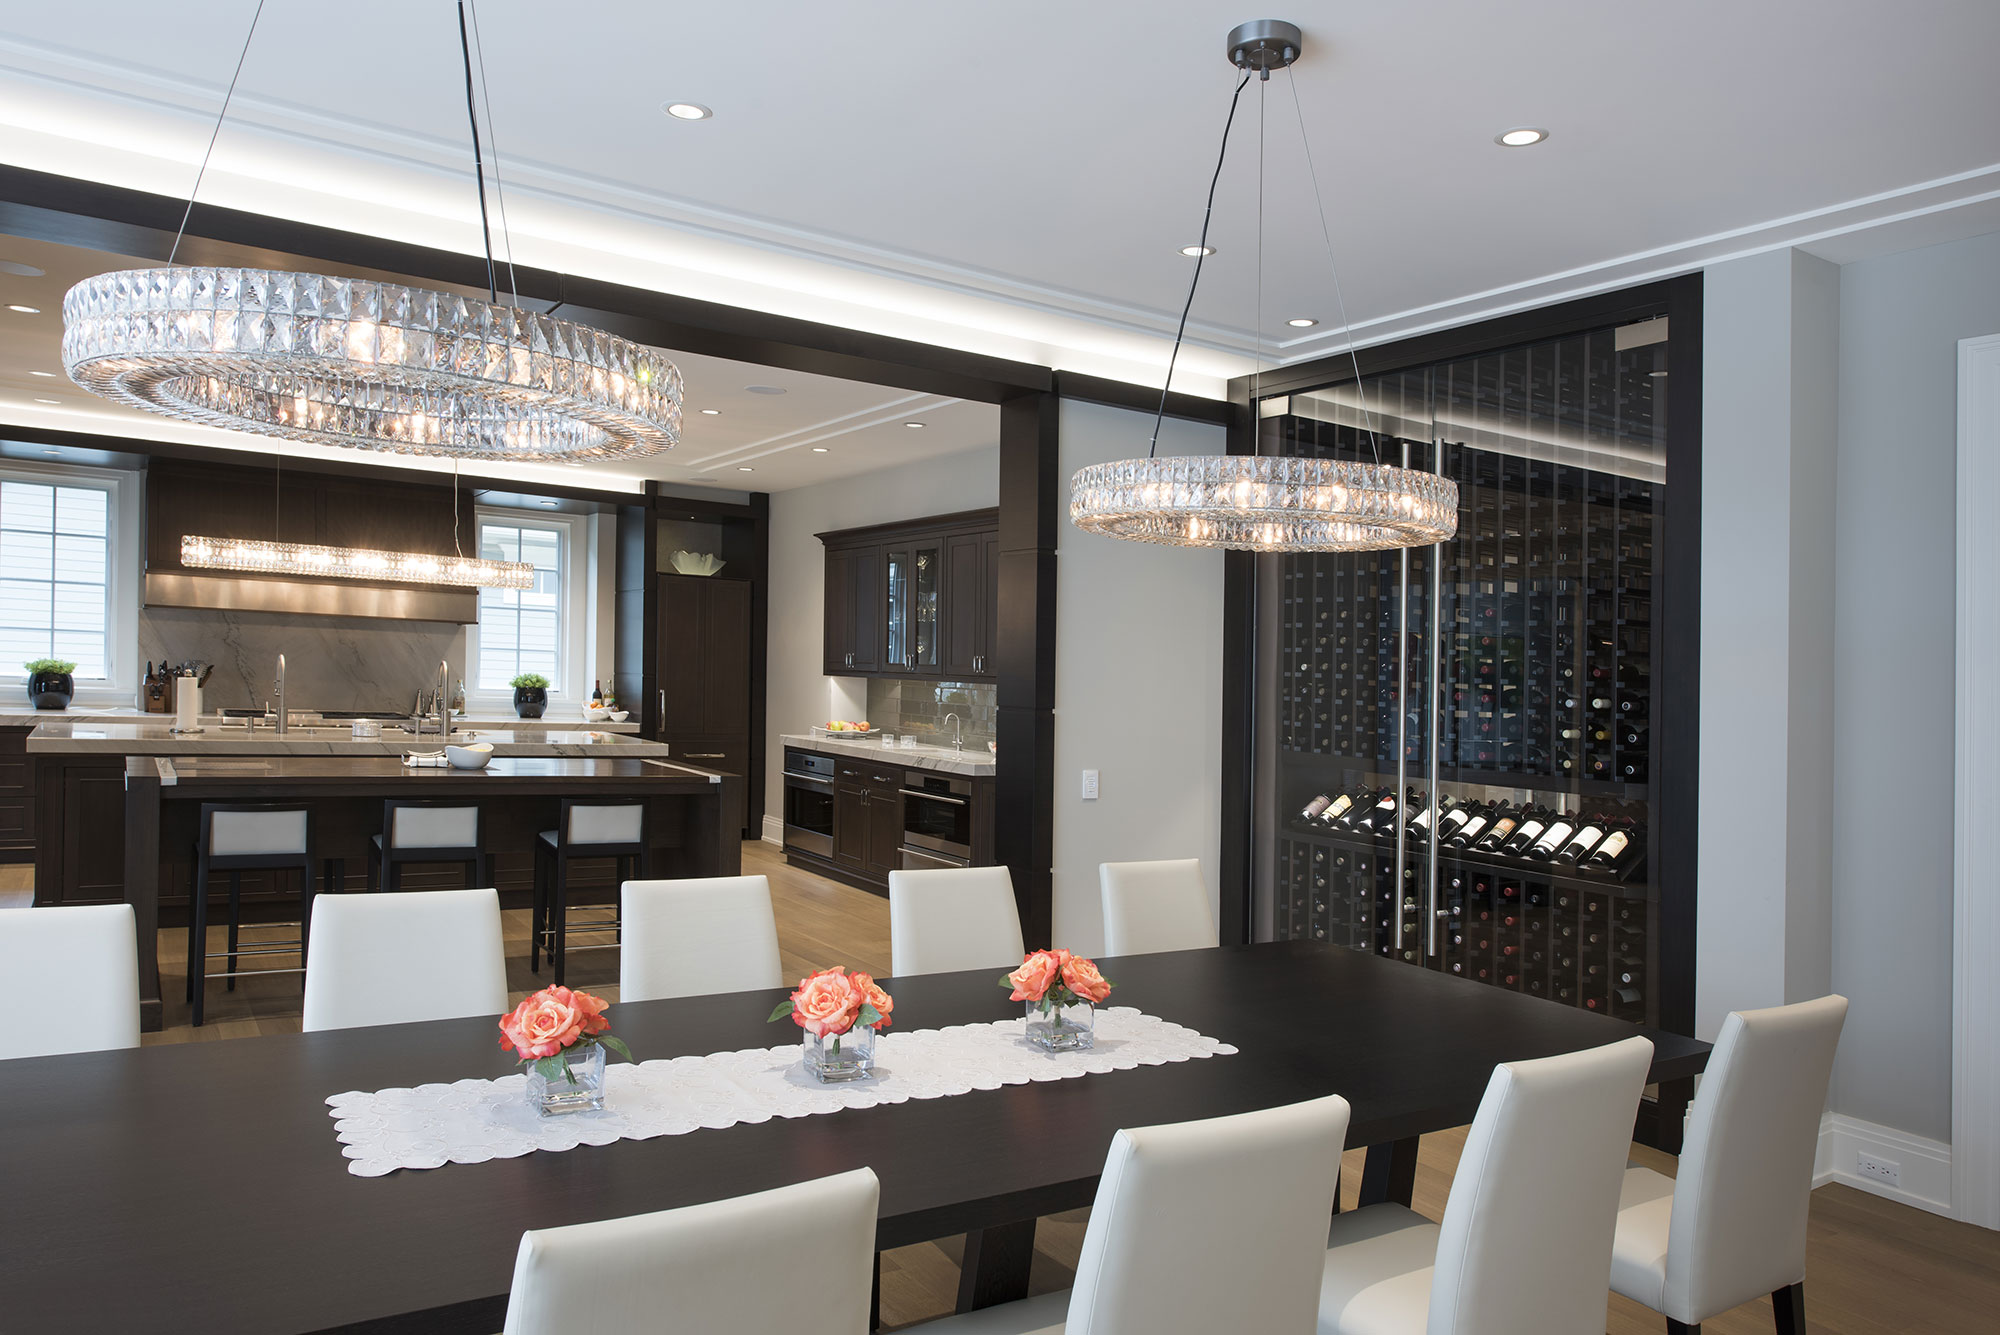 wine room furniture. Dining Room, Kitchen, Custom Refrigerated Wine Cabinets \u2022 WC6-06 Room Furniture